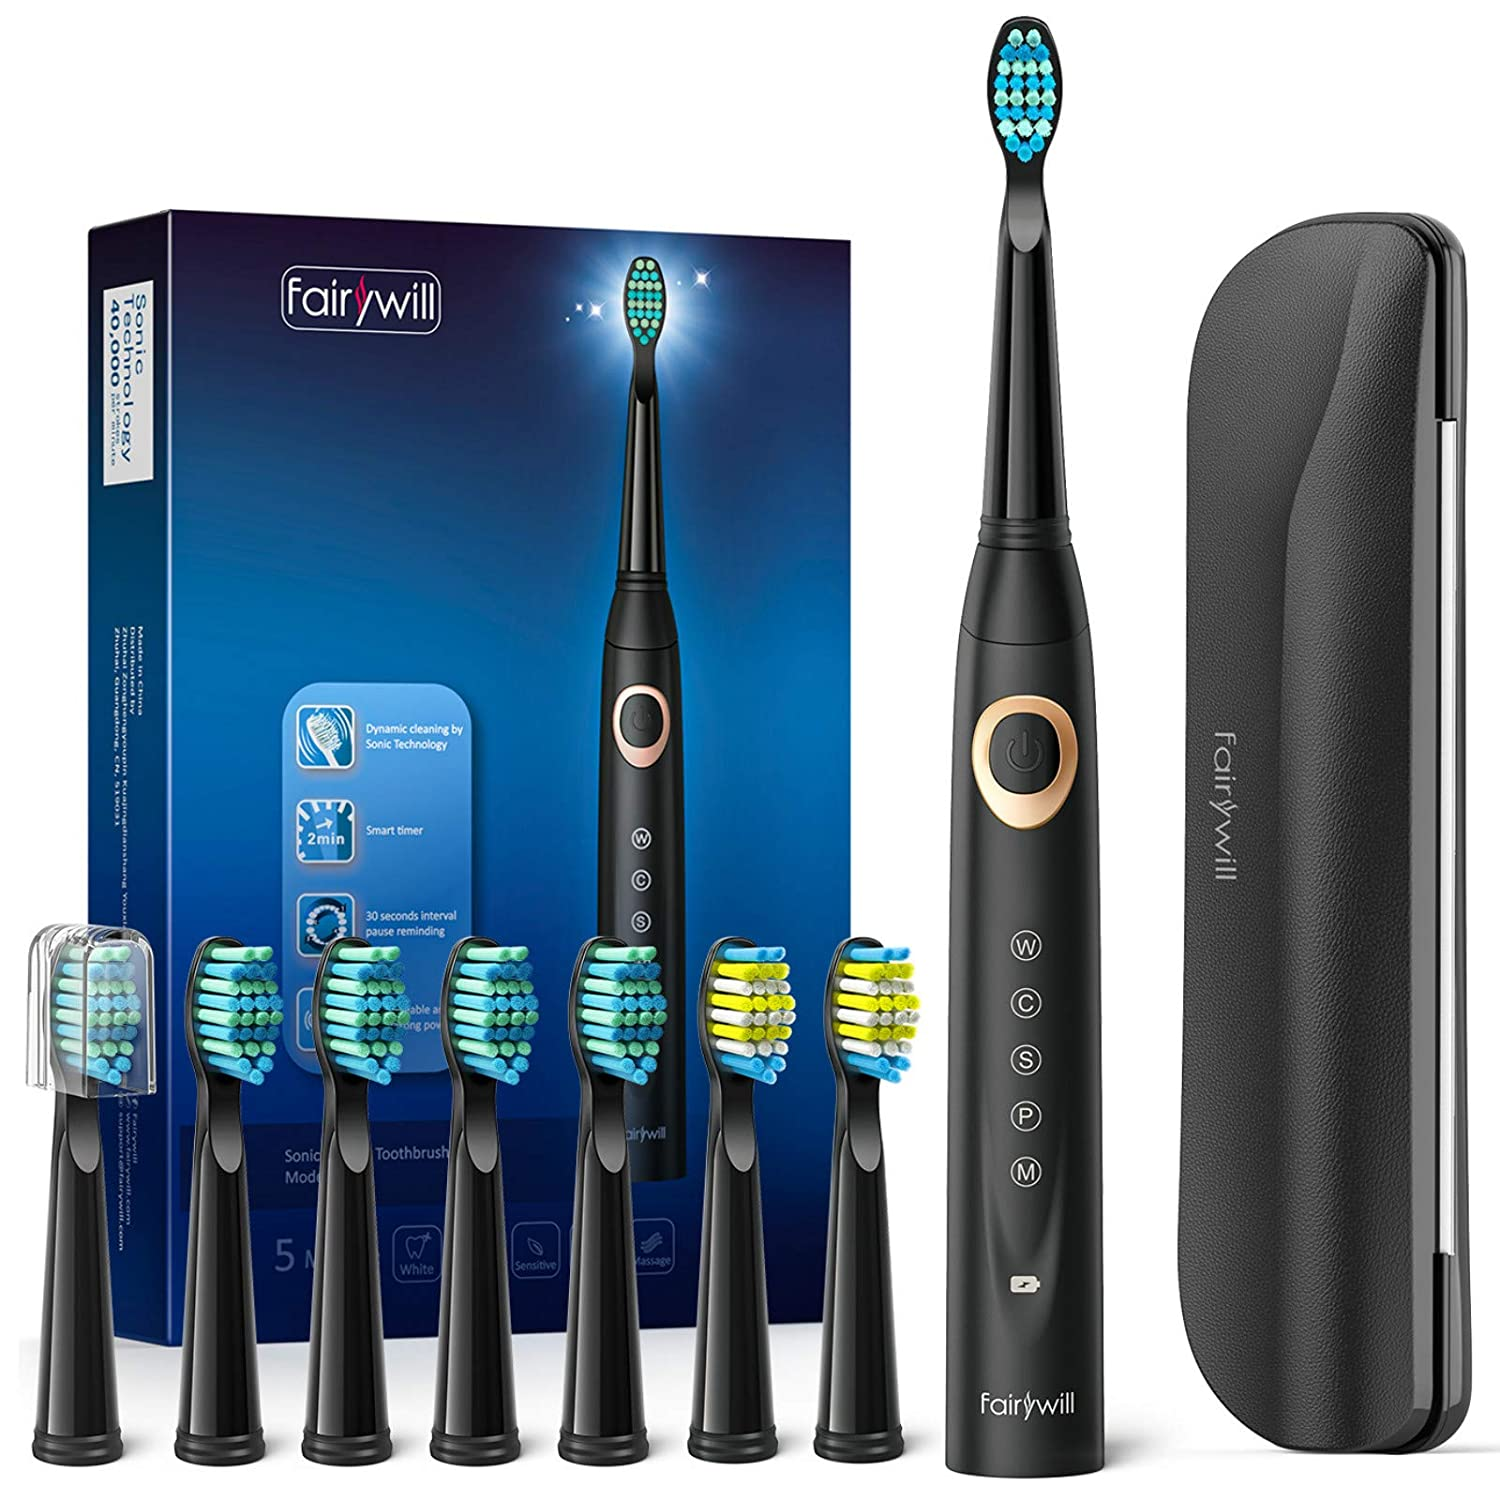 Fairywill D8 Sonic Electric Toothbrush for Adults and Kids ADA Accepted, 8 Dupont Brush Heads & Travel Case 5 Modes Rechargeable Whitening Power Toothbrush 2 Mins Smart Timer 40,000 VPM Black Series: Beauty